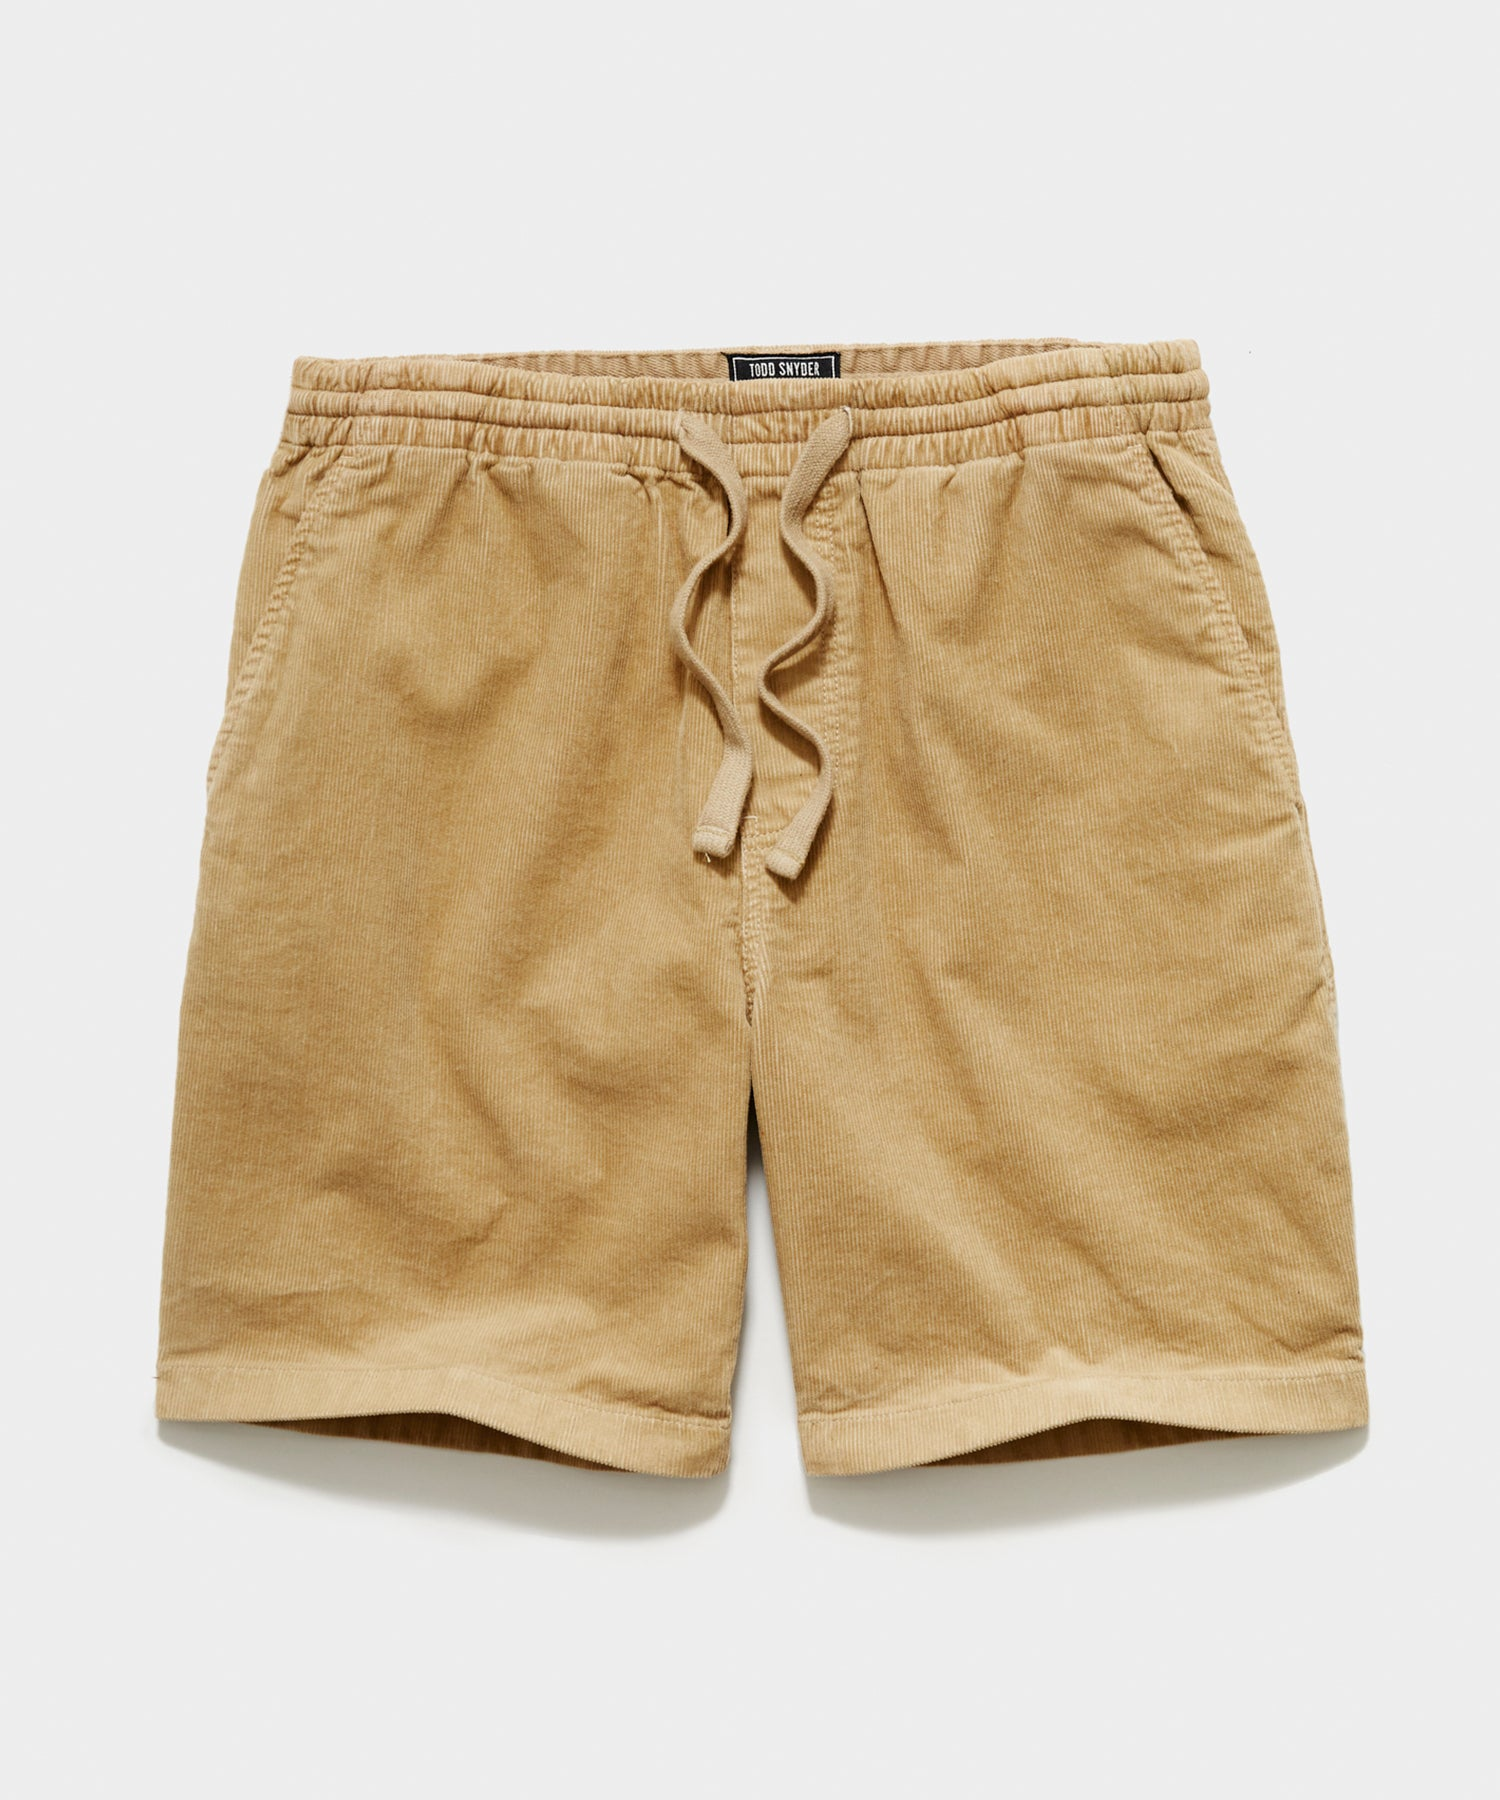 "7"" Washed Corduroy Weekend Short in Khaki"